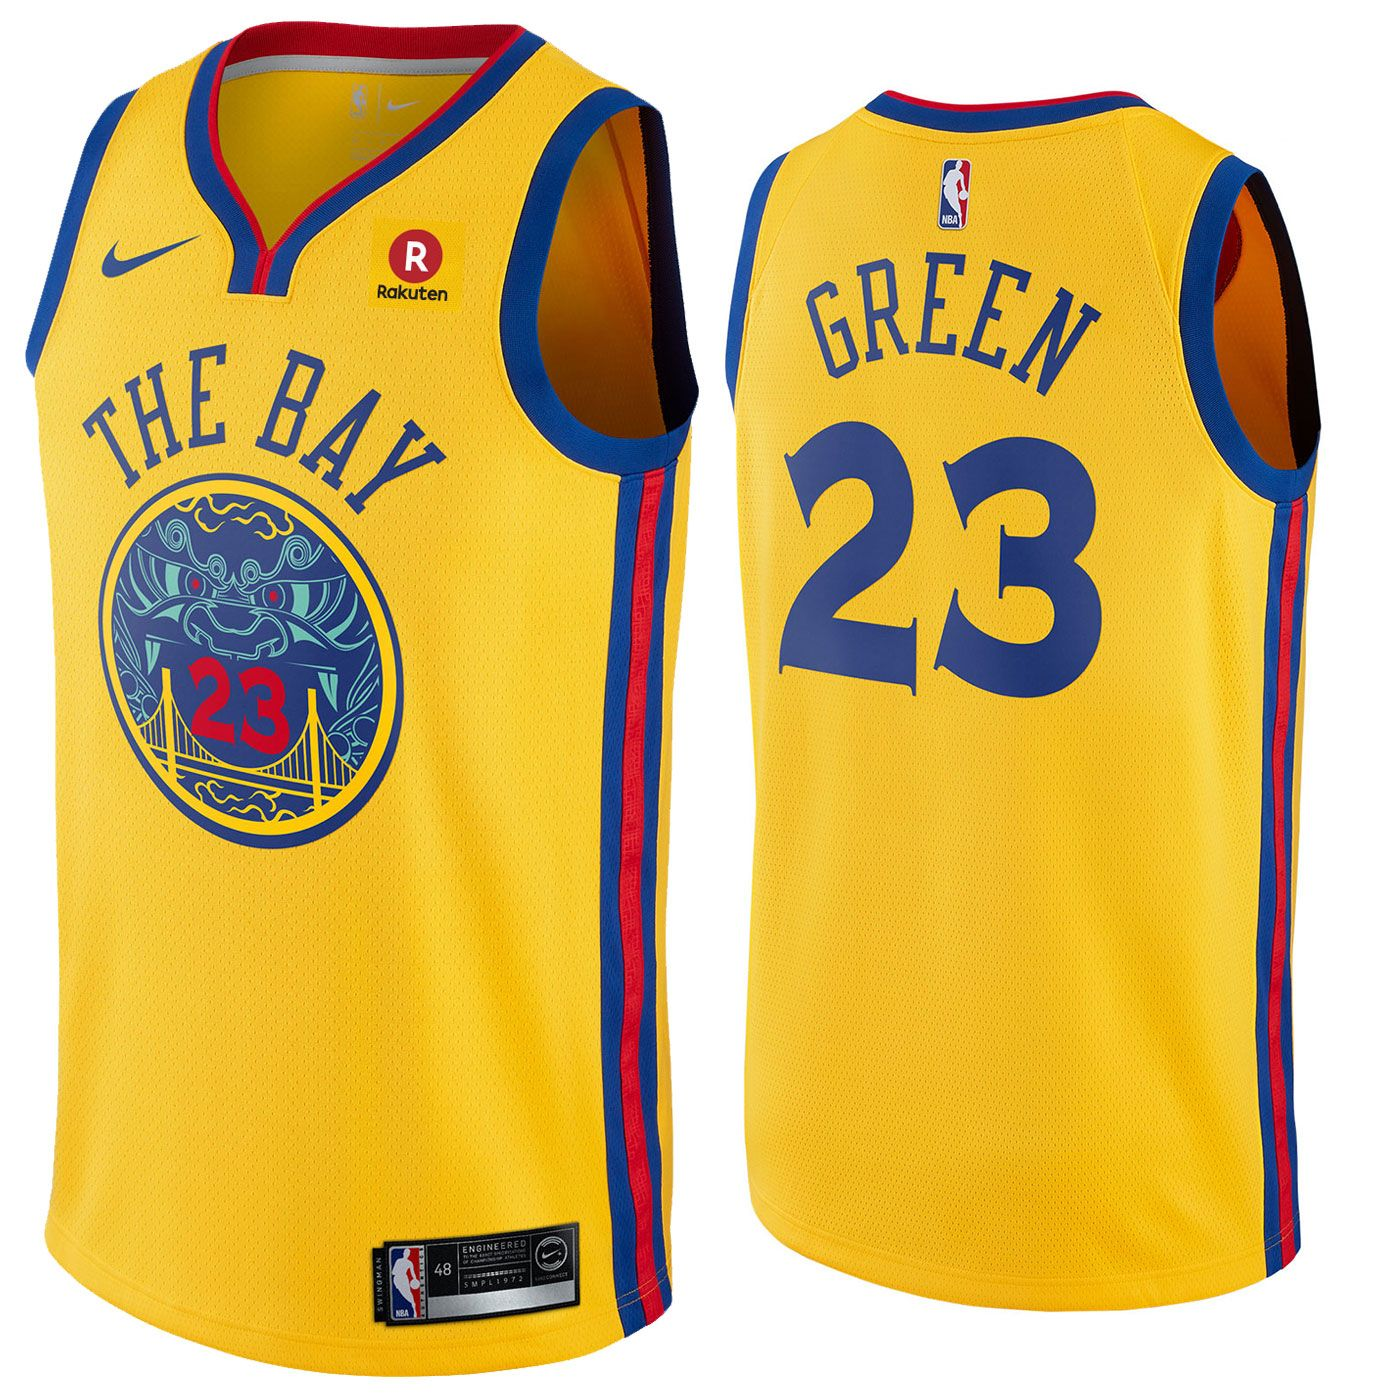 Warriors Oracle Arena and Online Team Stores are the only locations where  fans can purchase the new Nike Jerseys that feature the same look worn by  the ... b9dd9854e